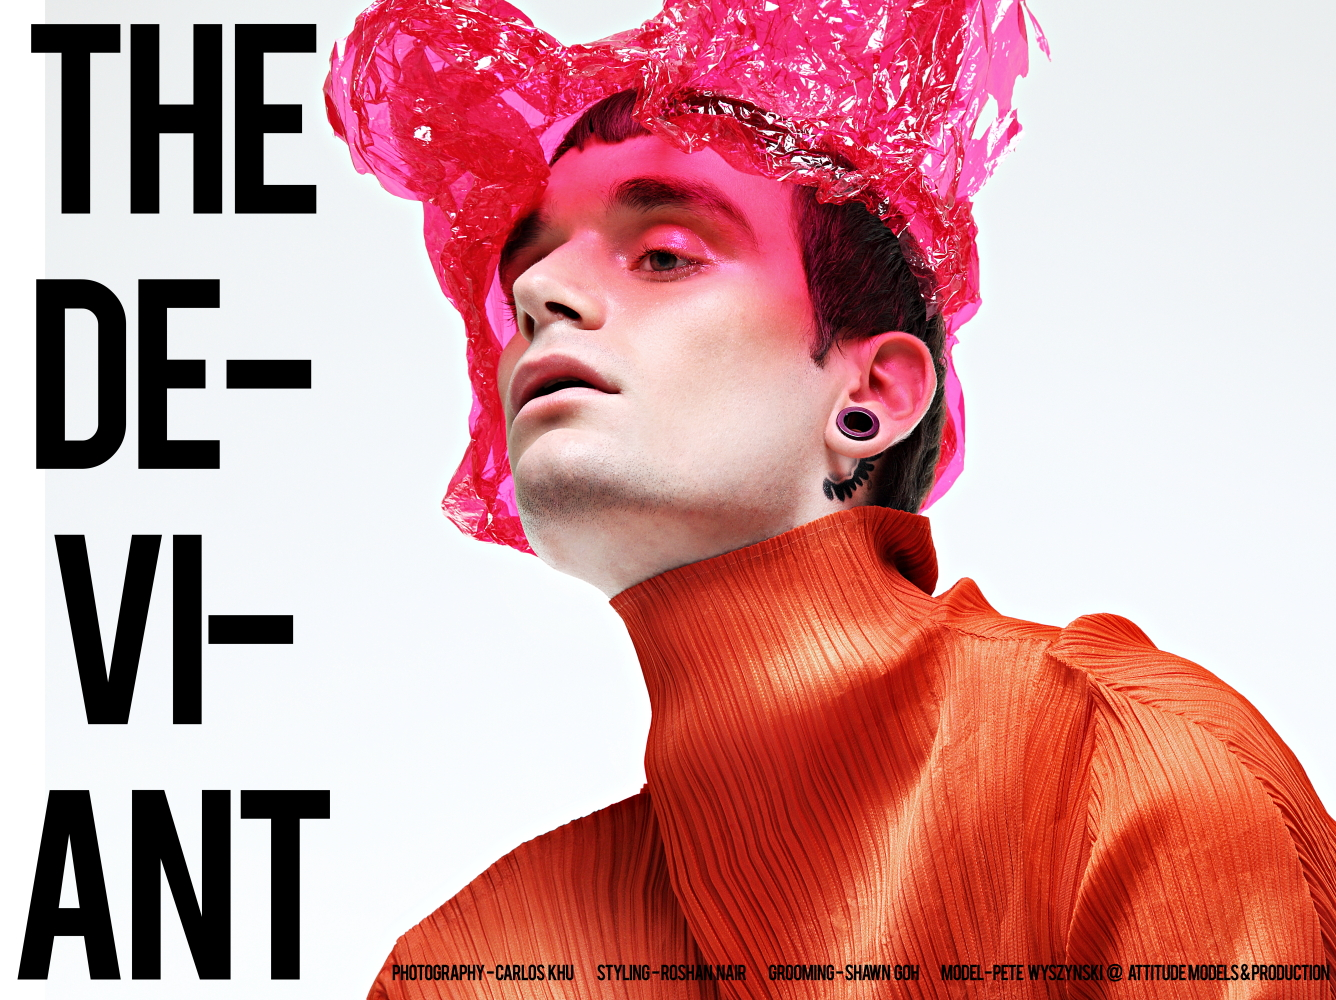 """""""The Deviant"""" artist photographer Carlos Khu presents his new work with us, starring by model Pete Wyszyński from Attitude Models & Production. Superb set photography, fashionable garments, originality and professional work this could not do it without styling by Roshan Nair, grooming by Shawn Goh."""